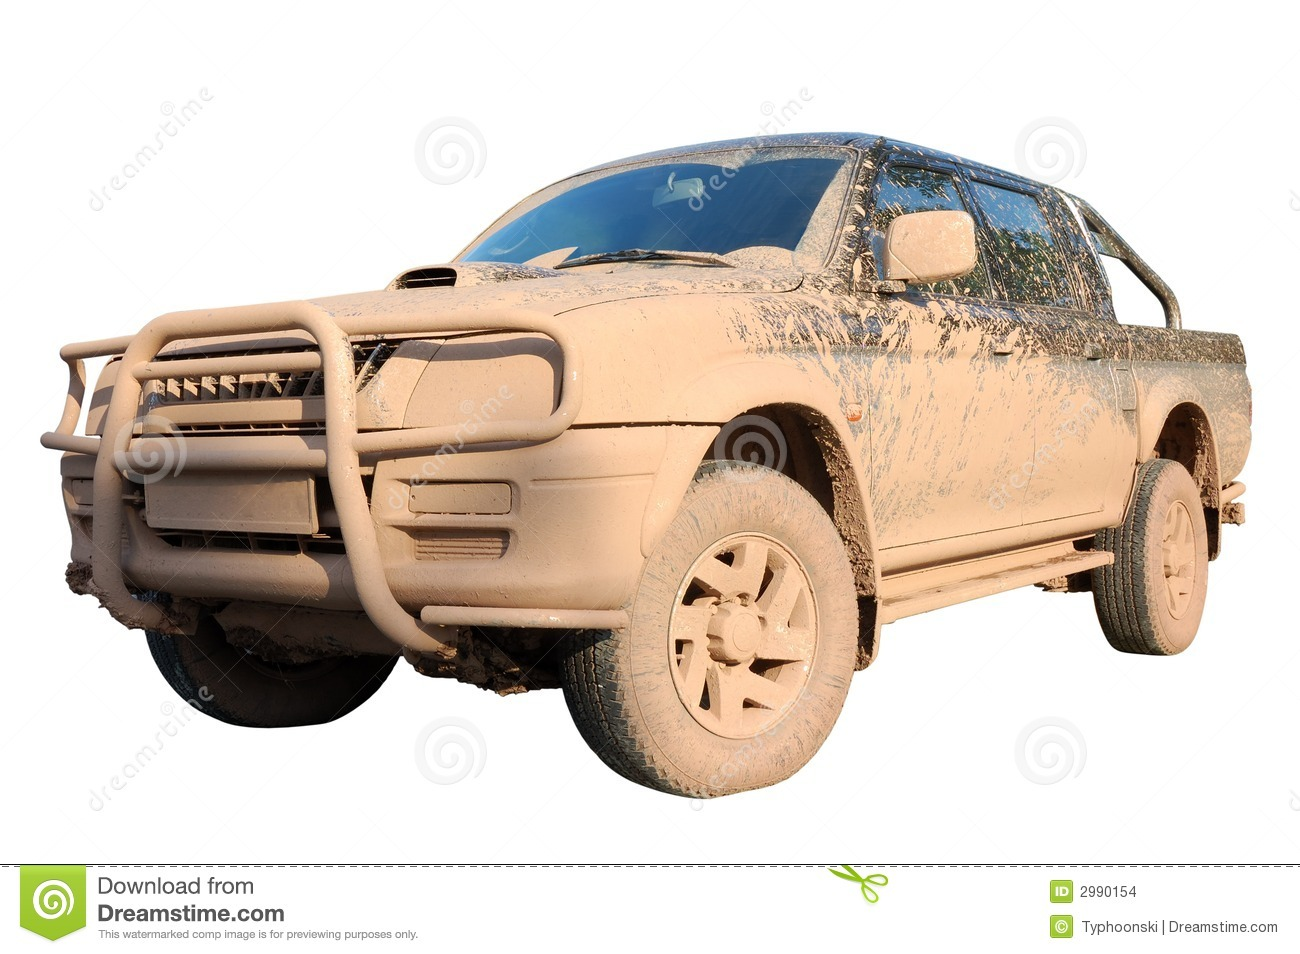 Dirty offroad pick-up car isolated over white with clipping-path.